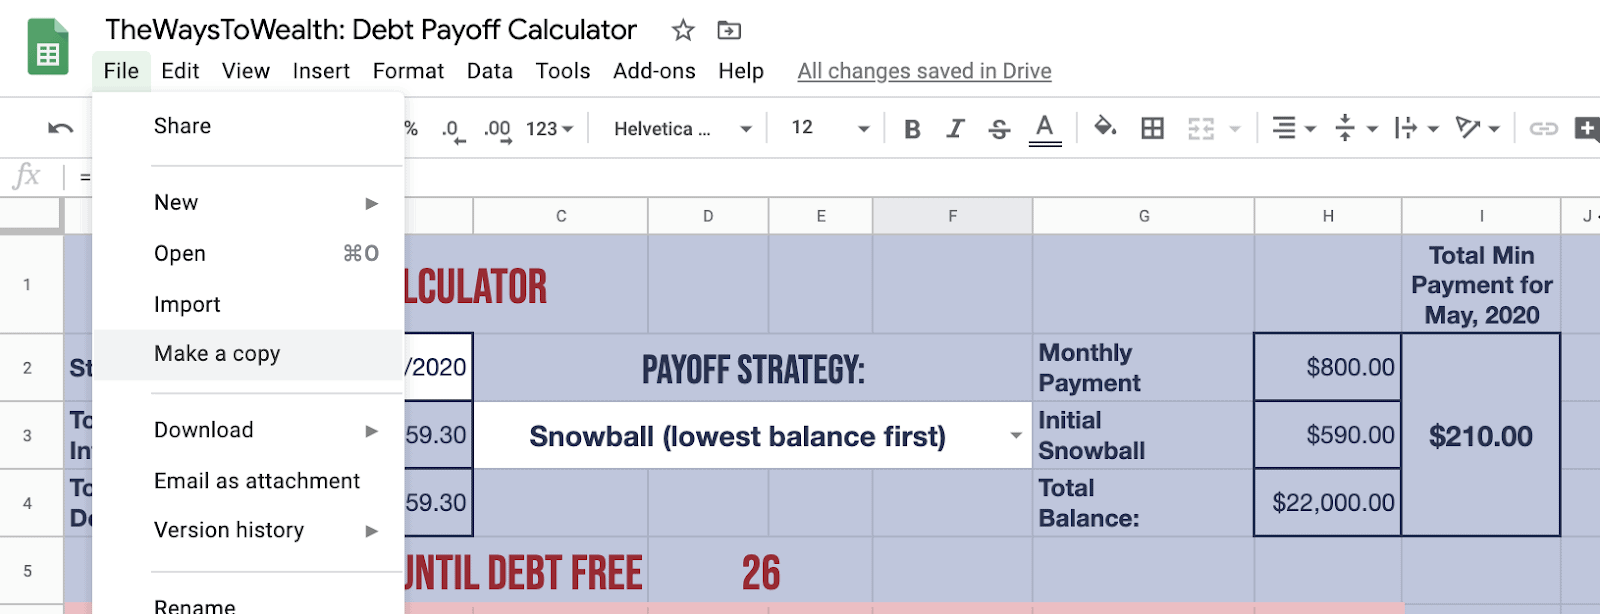 Debt Payoff Calculator Make a Copy